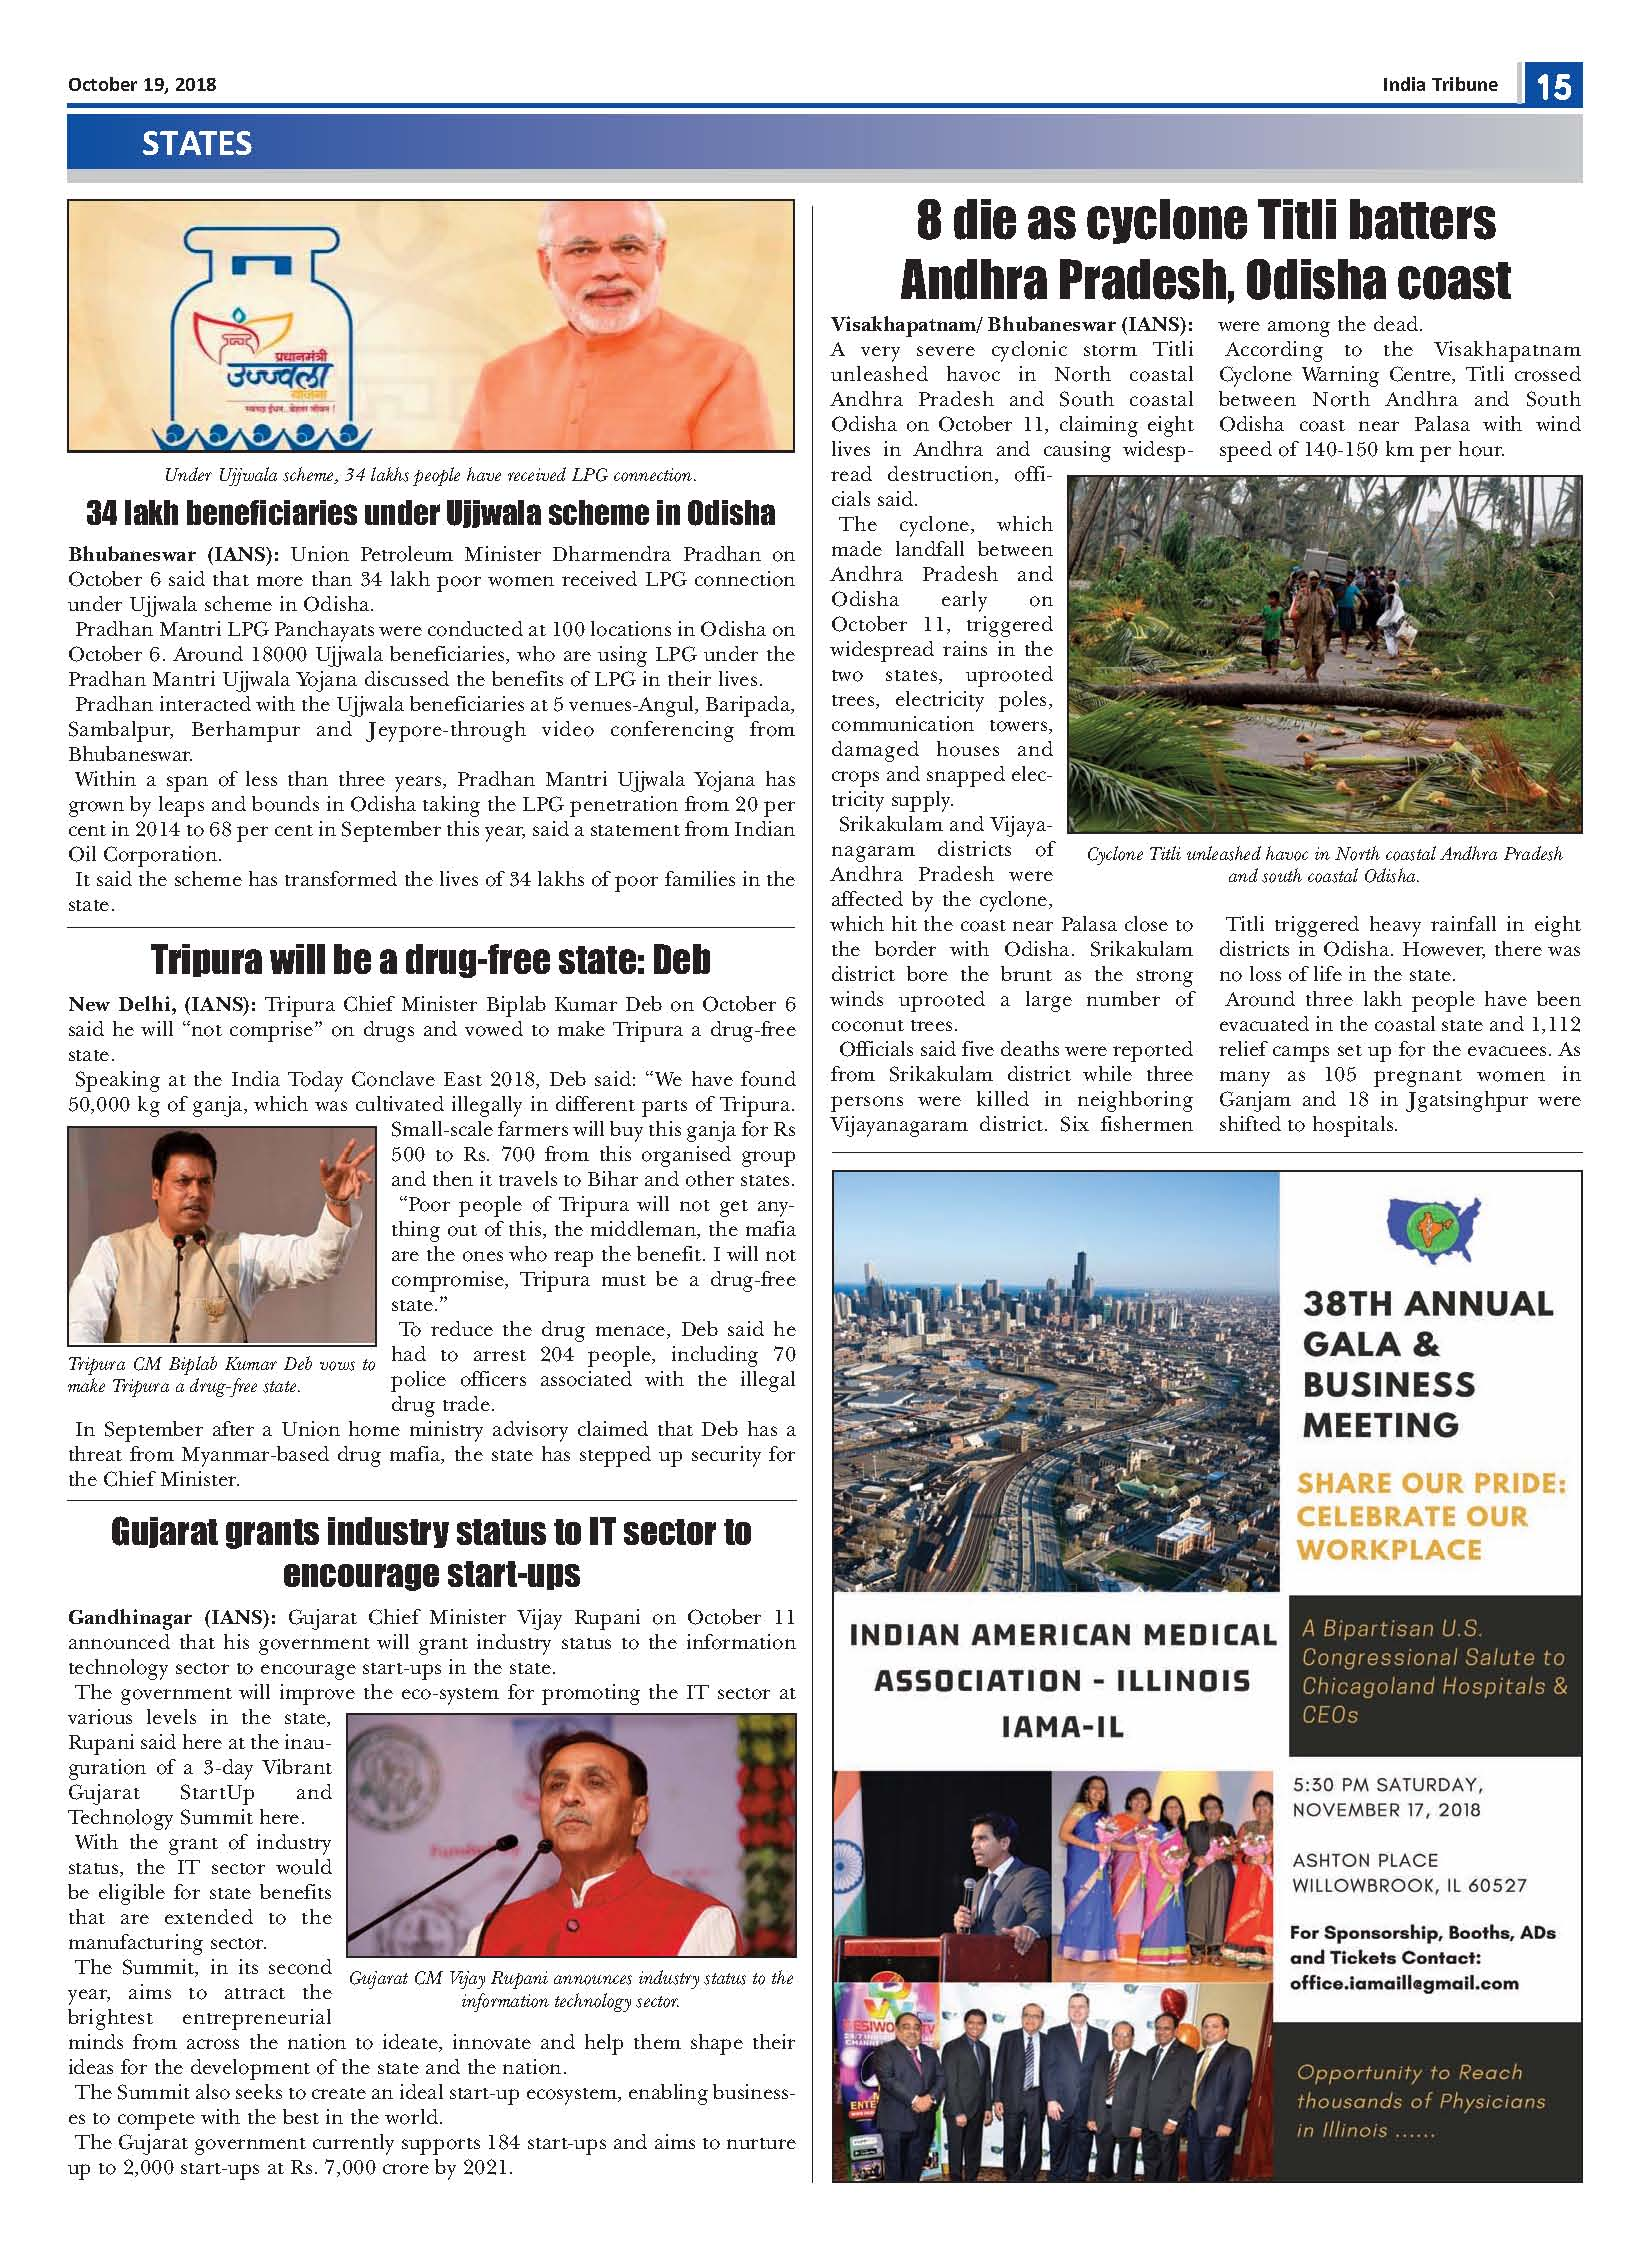 India Tribune Four